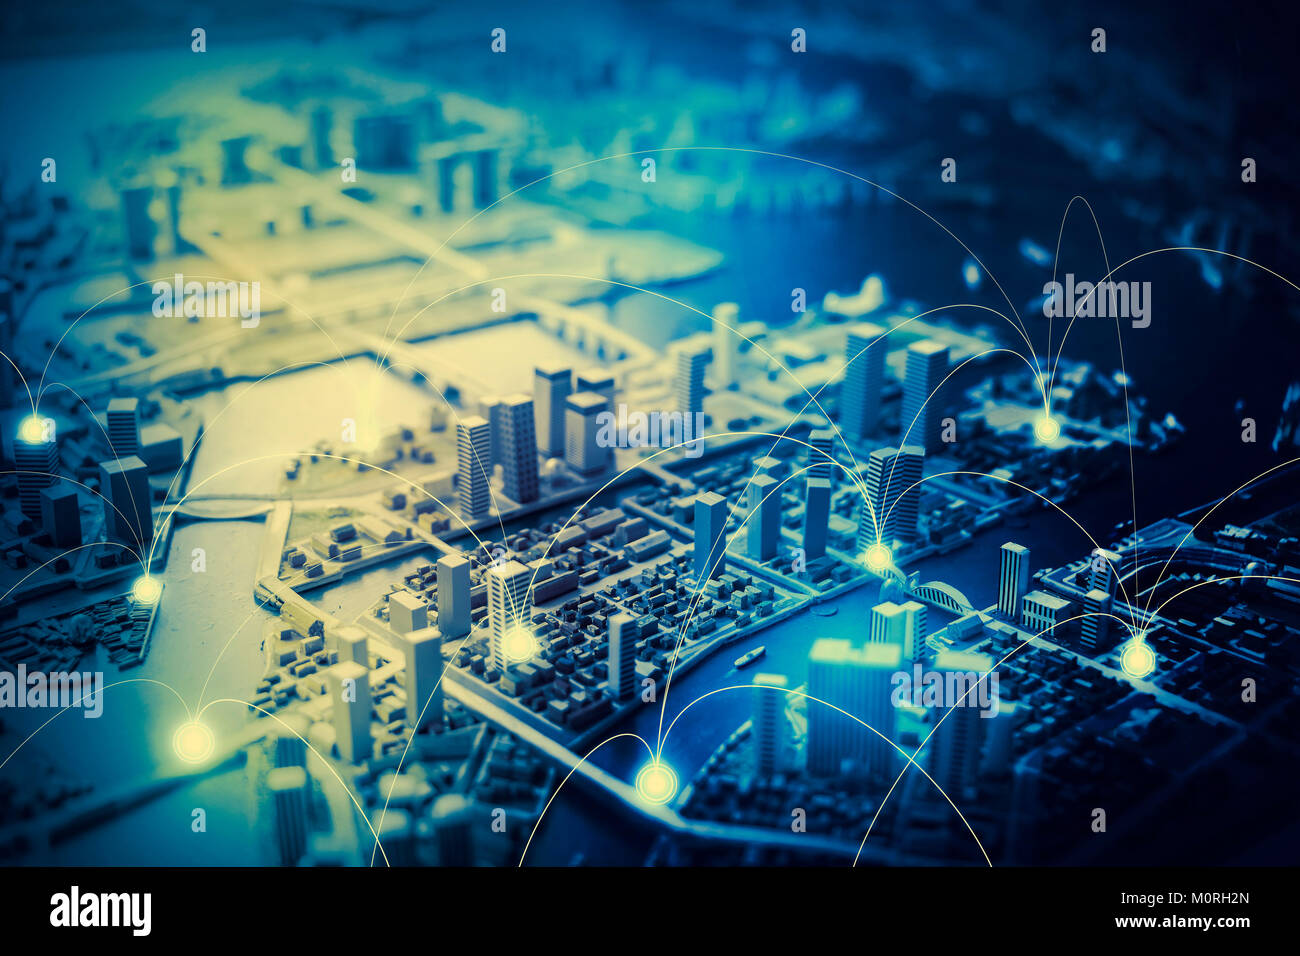 duotone graphic of smart city diorama and communication network concept IoT(Internet of Things), ICT(Information - Stock Image